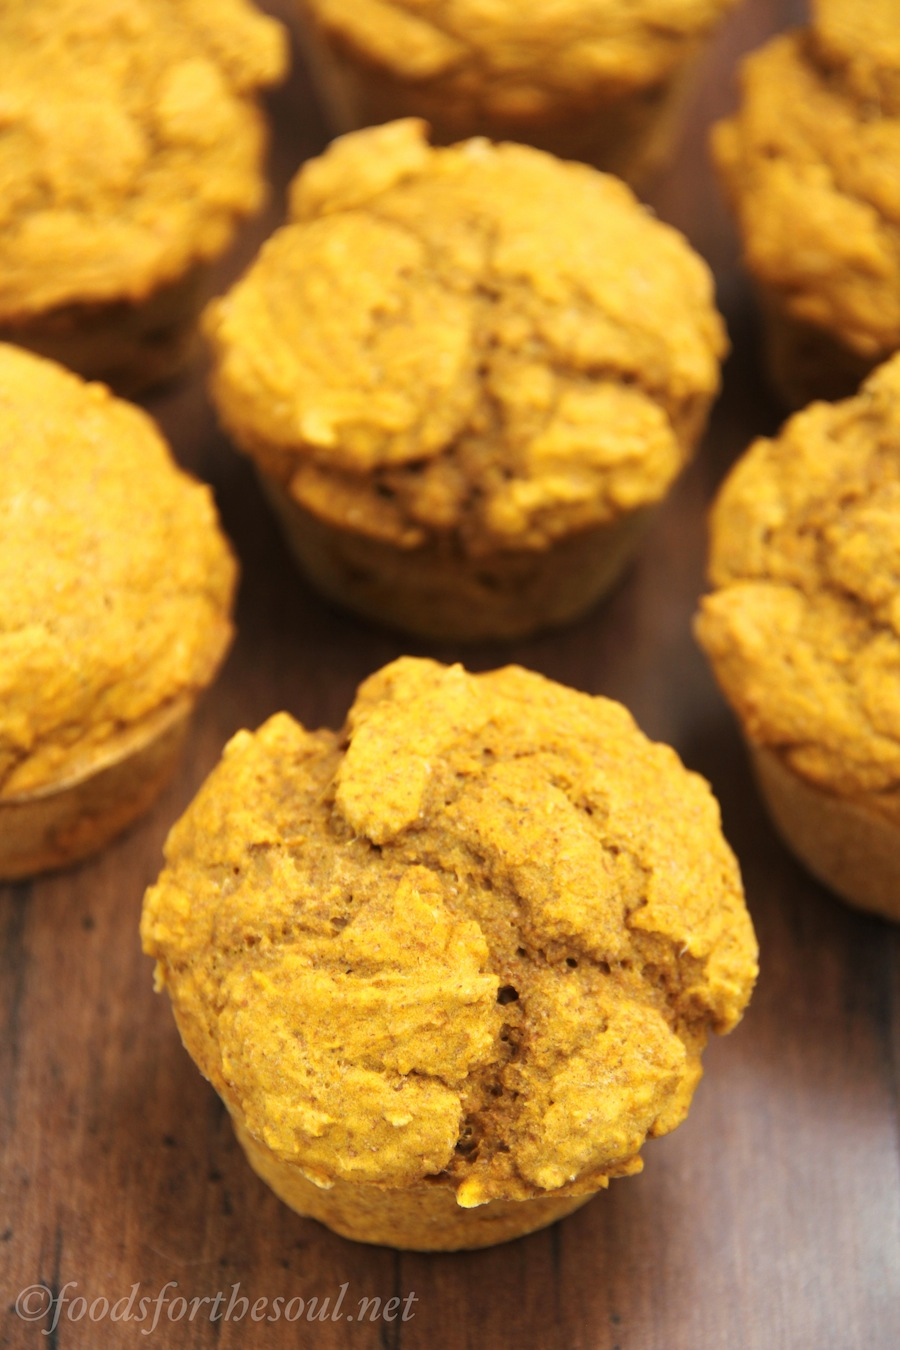 Whole Foods Pumpkin Muffin Calories